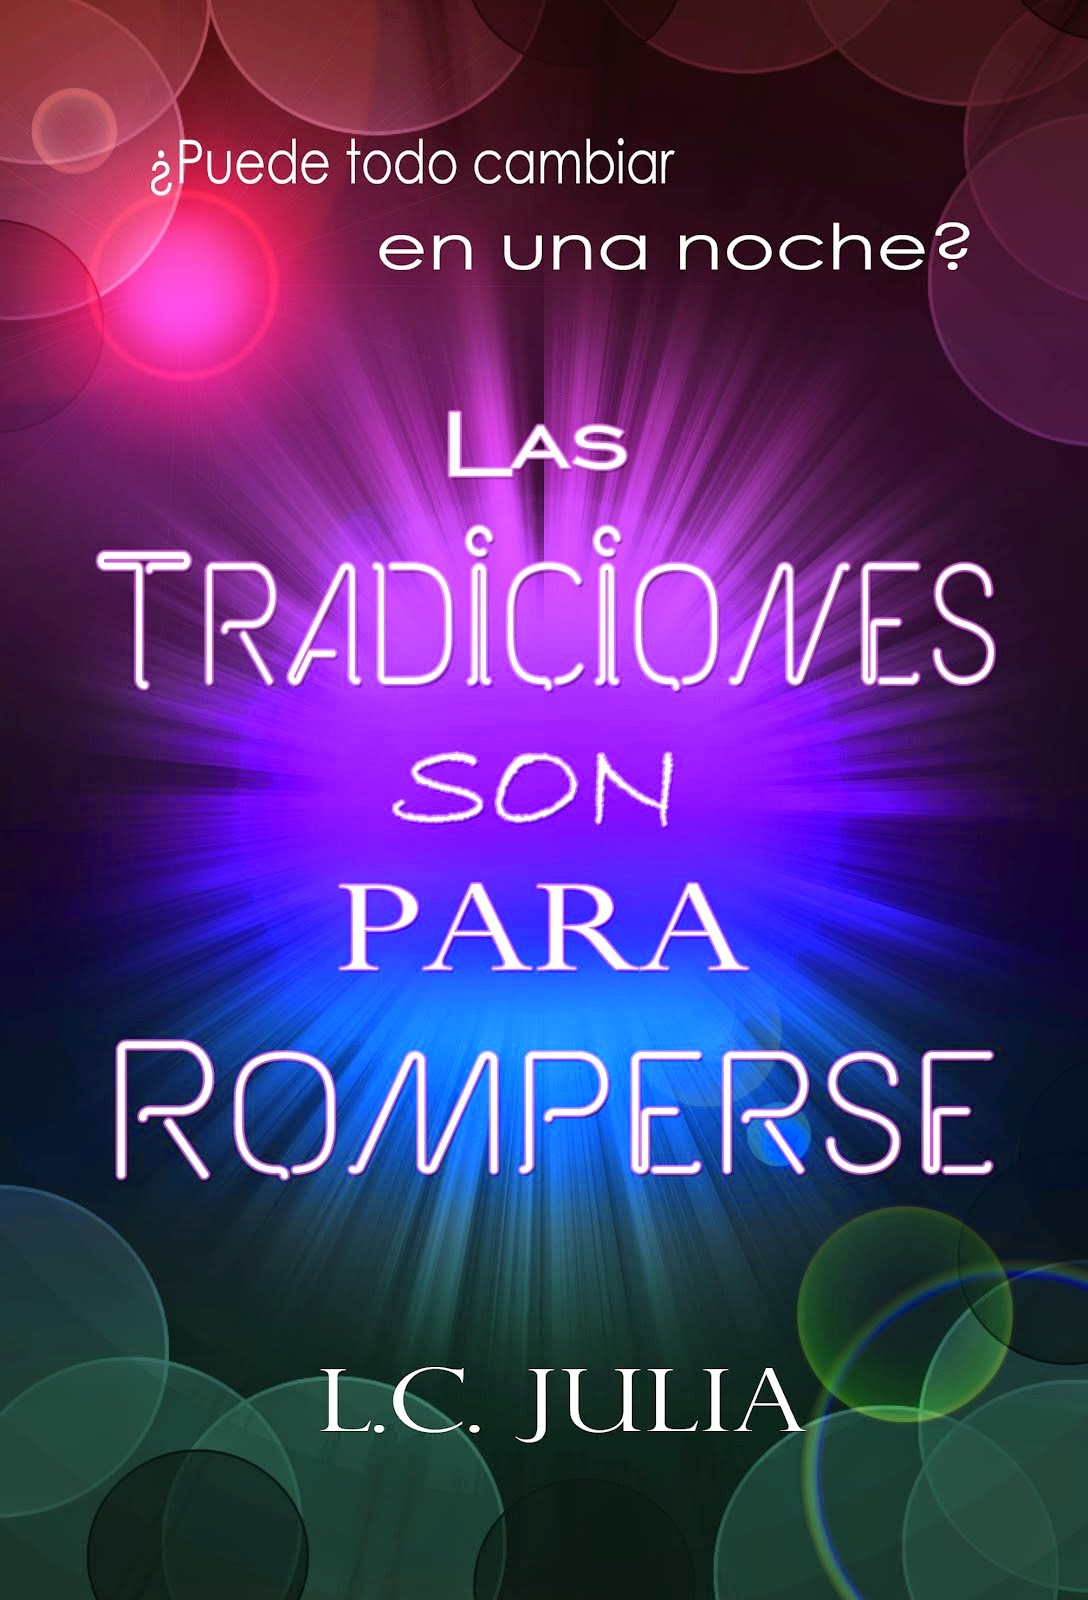 Descarga mi Libro !